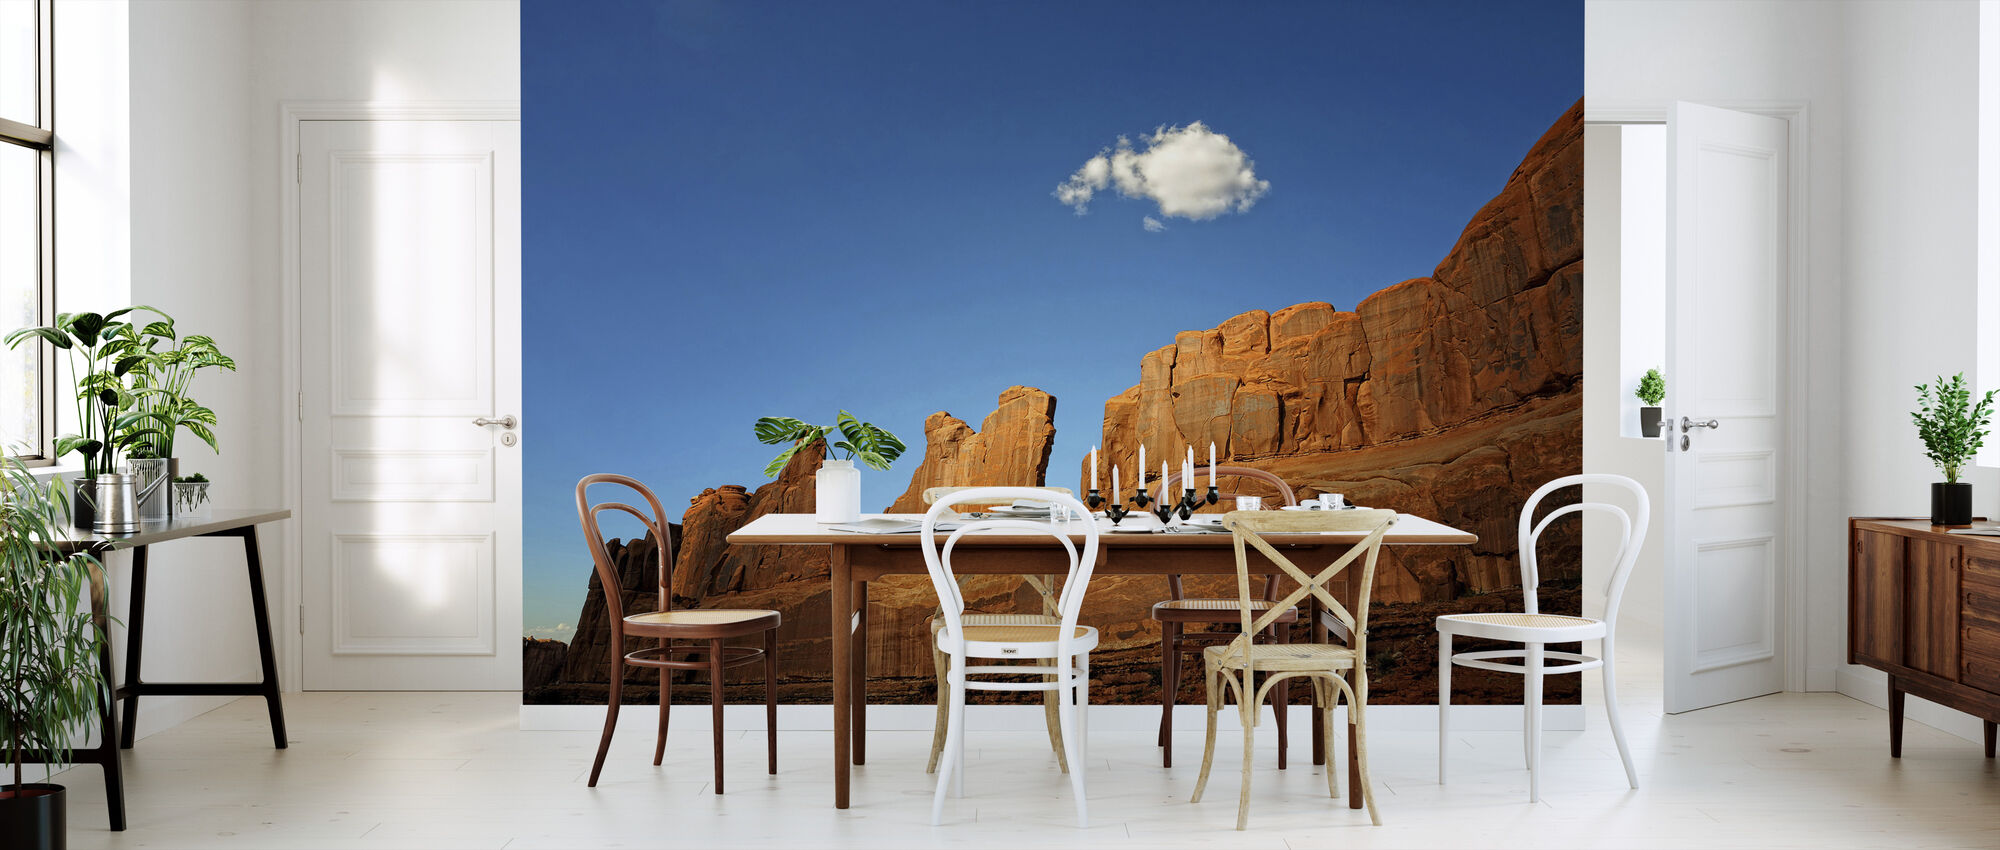 arches national park fototapete nach ma photowall. Black Bedroom Furniture Sets. Home Design Ideas